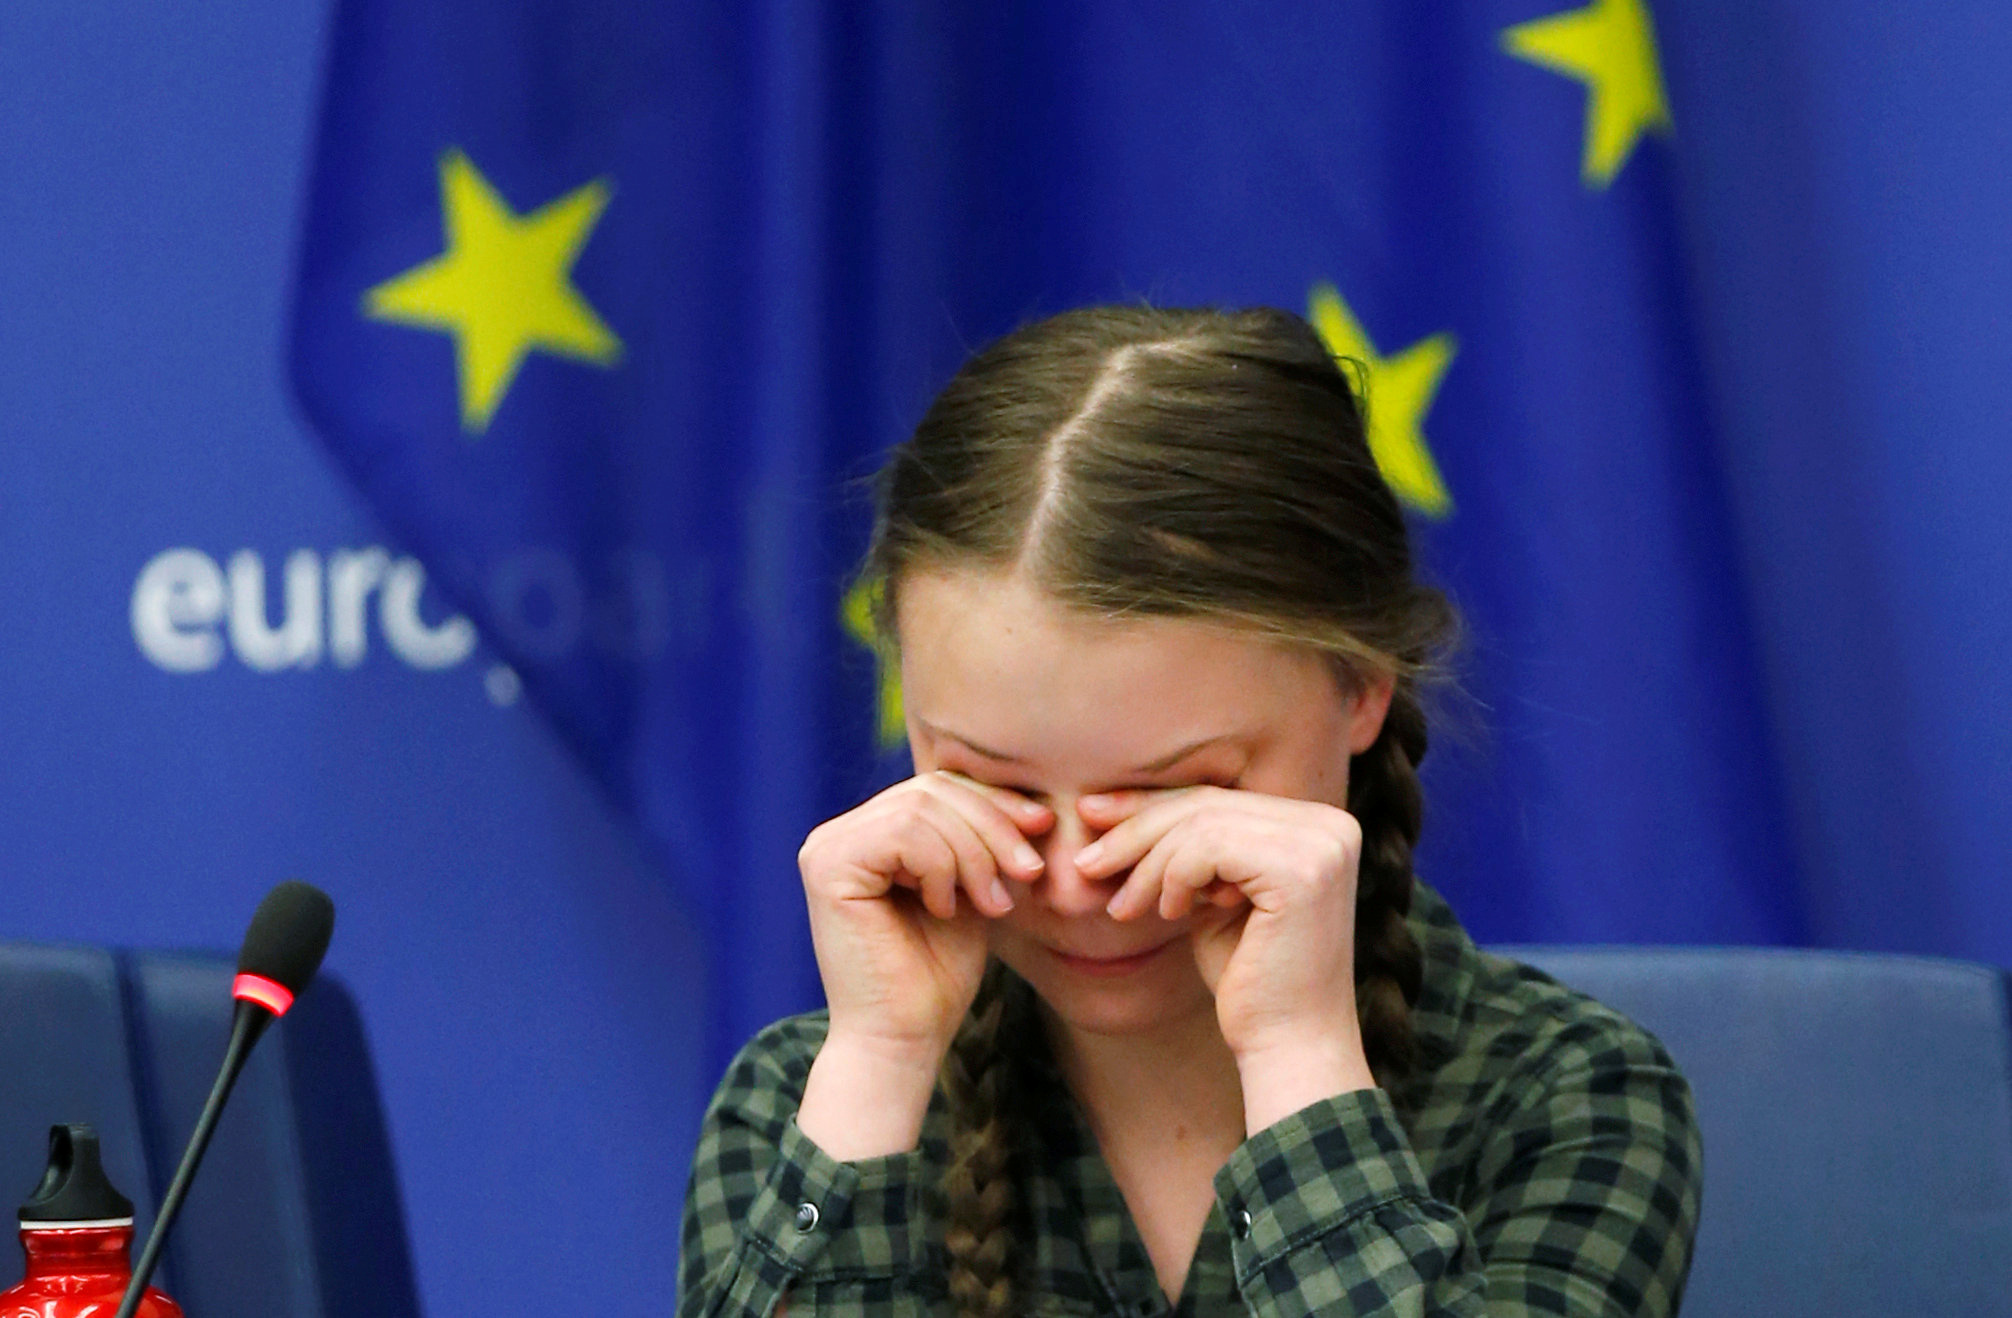 Swedish environmental activist Thunberg cries at the end of her speech to the environment committee of the European Parliament in Strasbourg